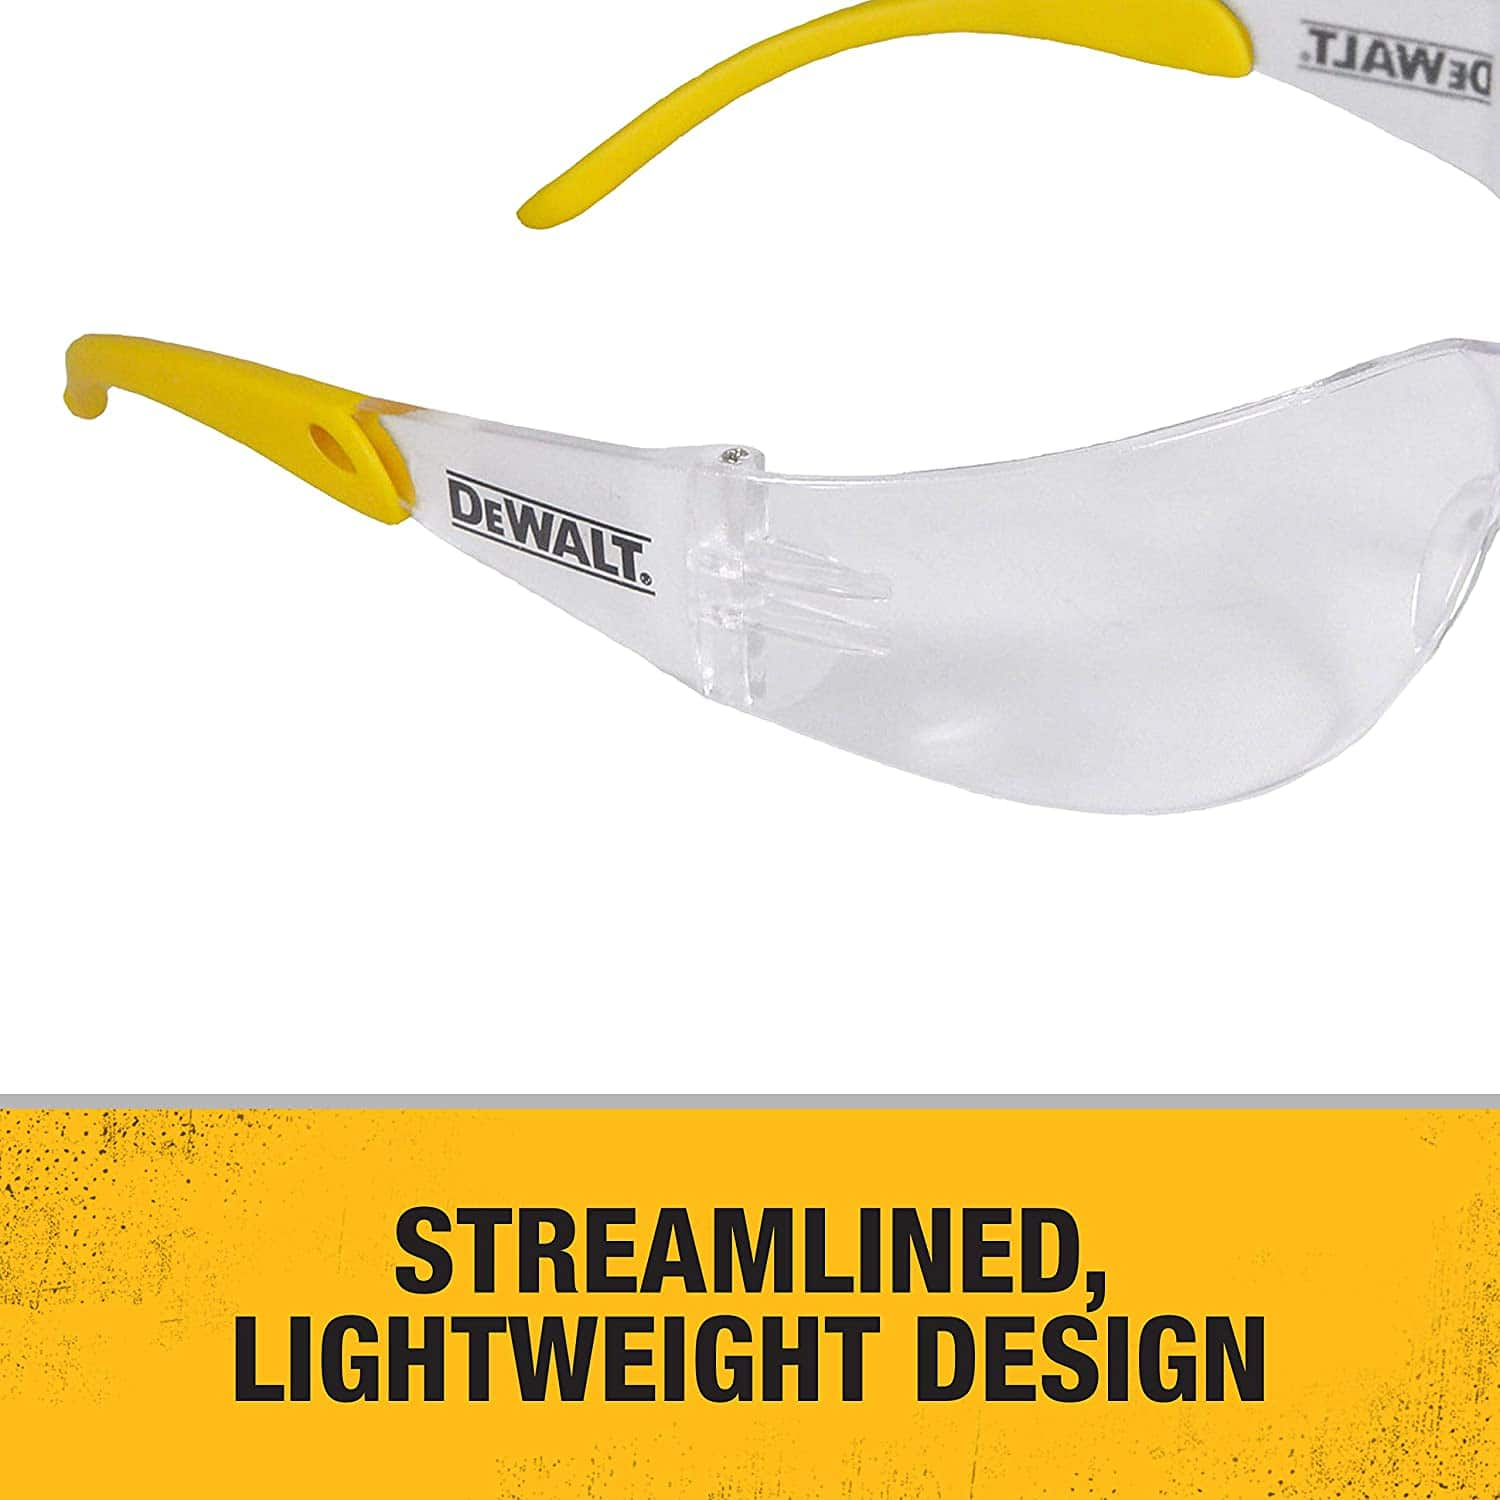 Dewalt DPG54-1D Protector Clear High Performance Lightweight Protective Safety Glasses with Wraparound Frame $2.99